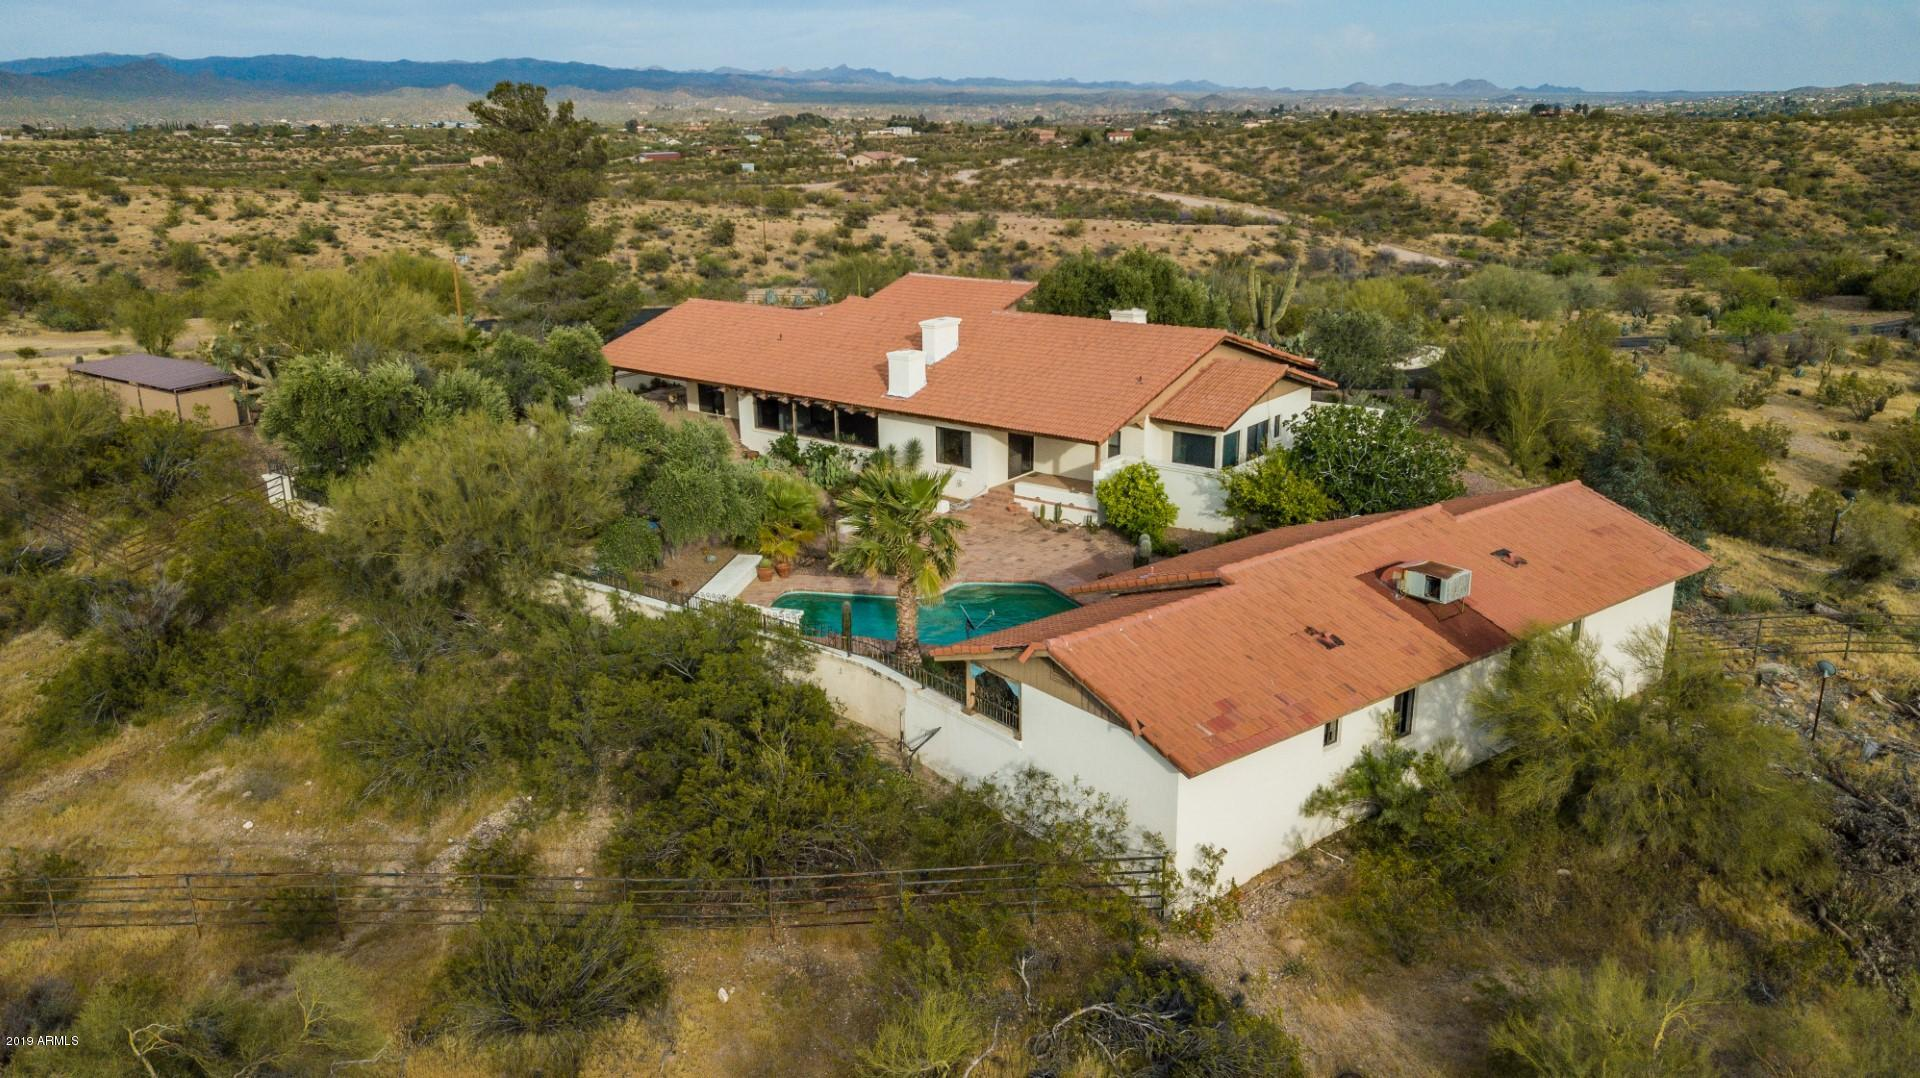 MLS 5912211 19300 W VERDE HILLS Drive, Wickenburg, AZ 85390 Wickenburg AZ One Plus Acre Home